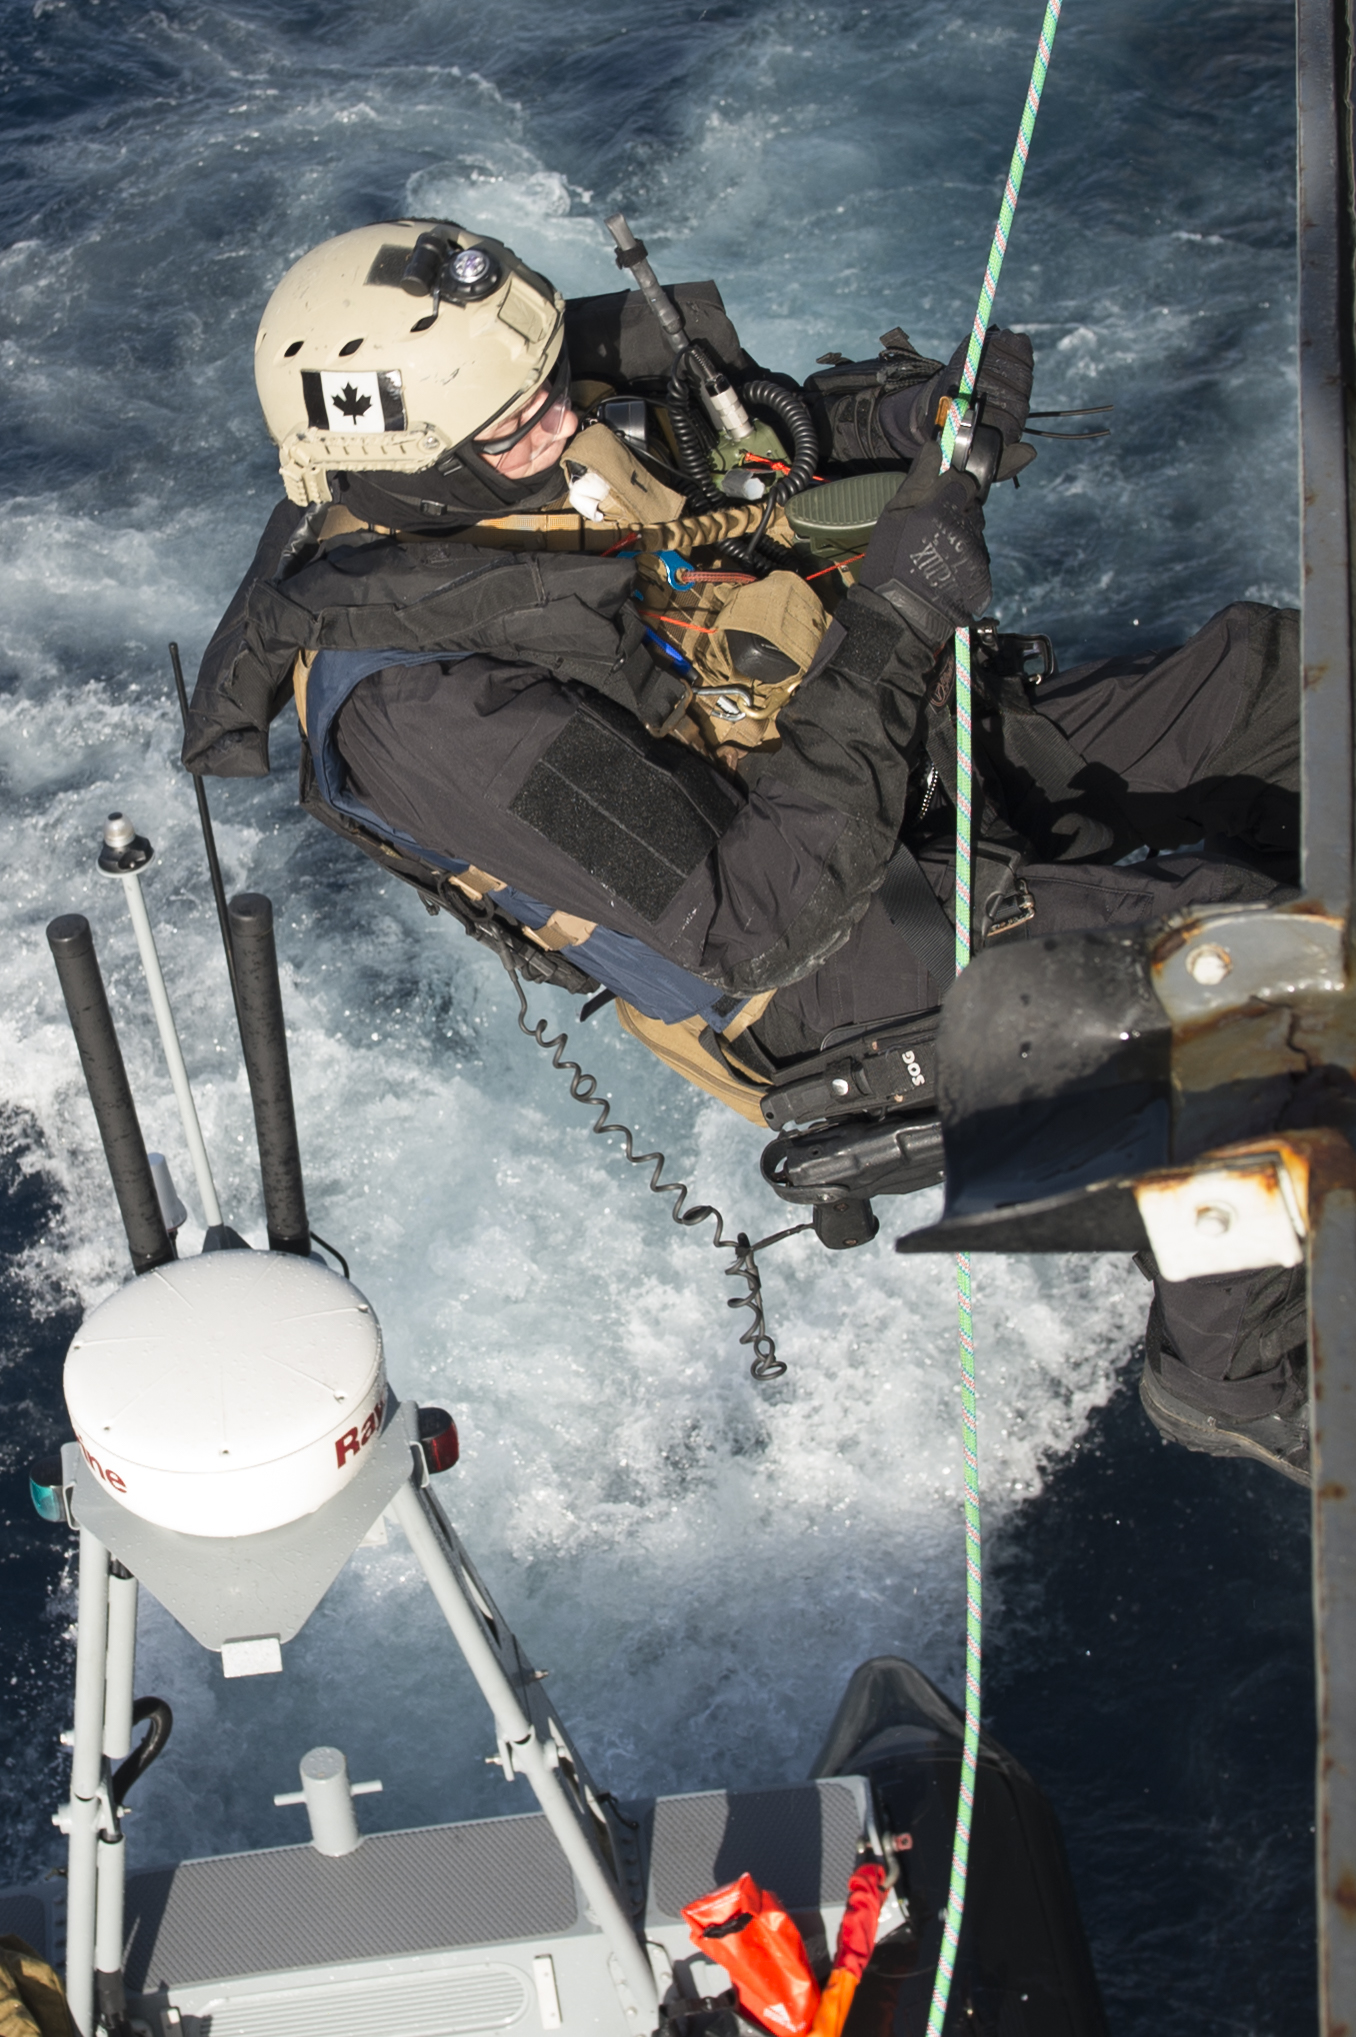 January 13, 2017. A member of the Maritime Tactical Operations Group repels off Her Majesty's Canadian Ship (HMCS) ST JOHN'S as the ship transits across the Atlantic Ocean to participate in Operation REASSURANCE on January 13, 2017. (Photo: Leading Seaman Ogle Henry, Formation Imaging Services)